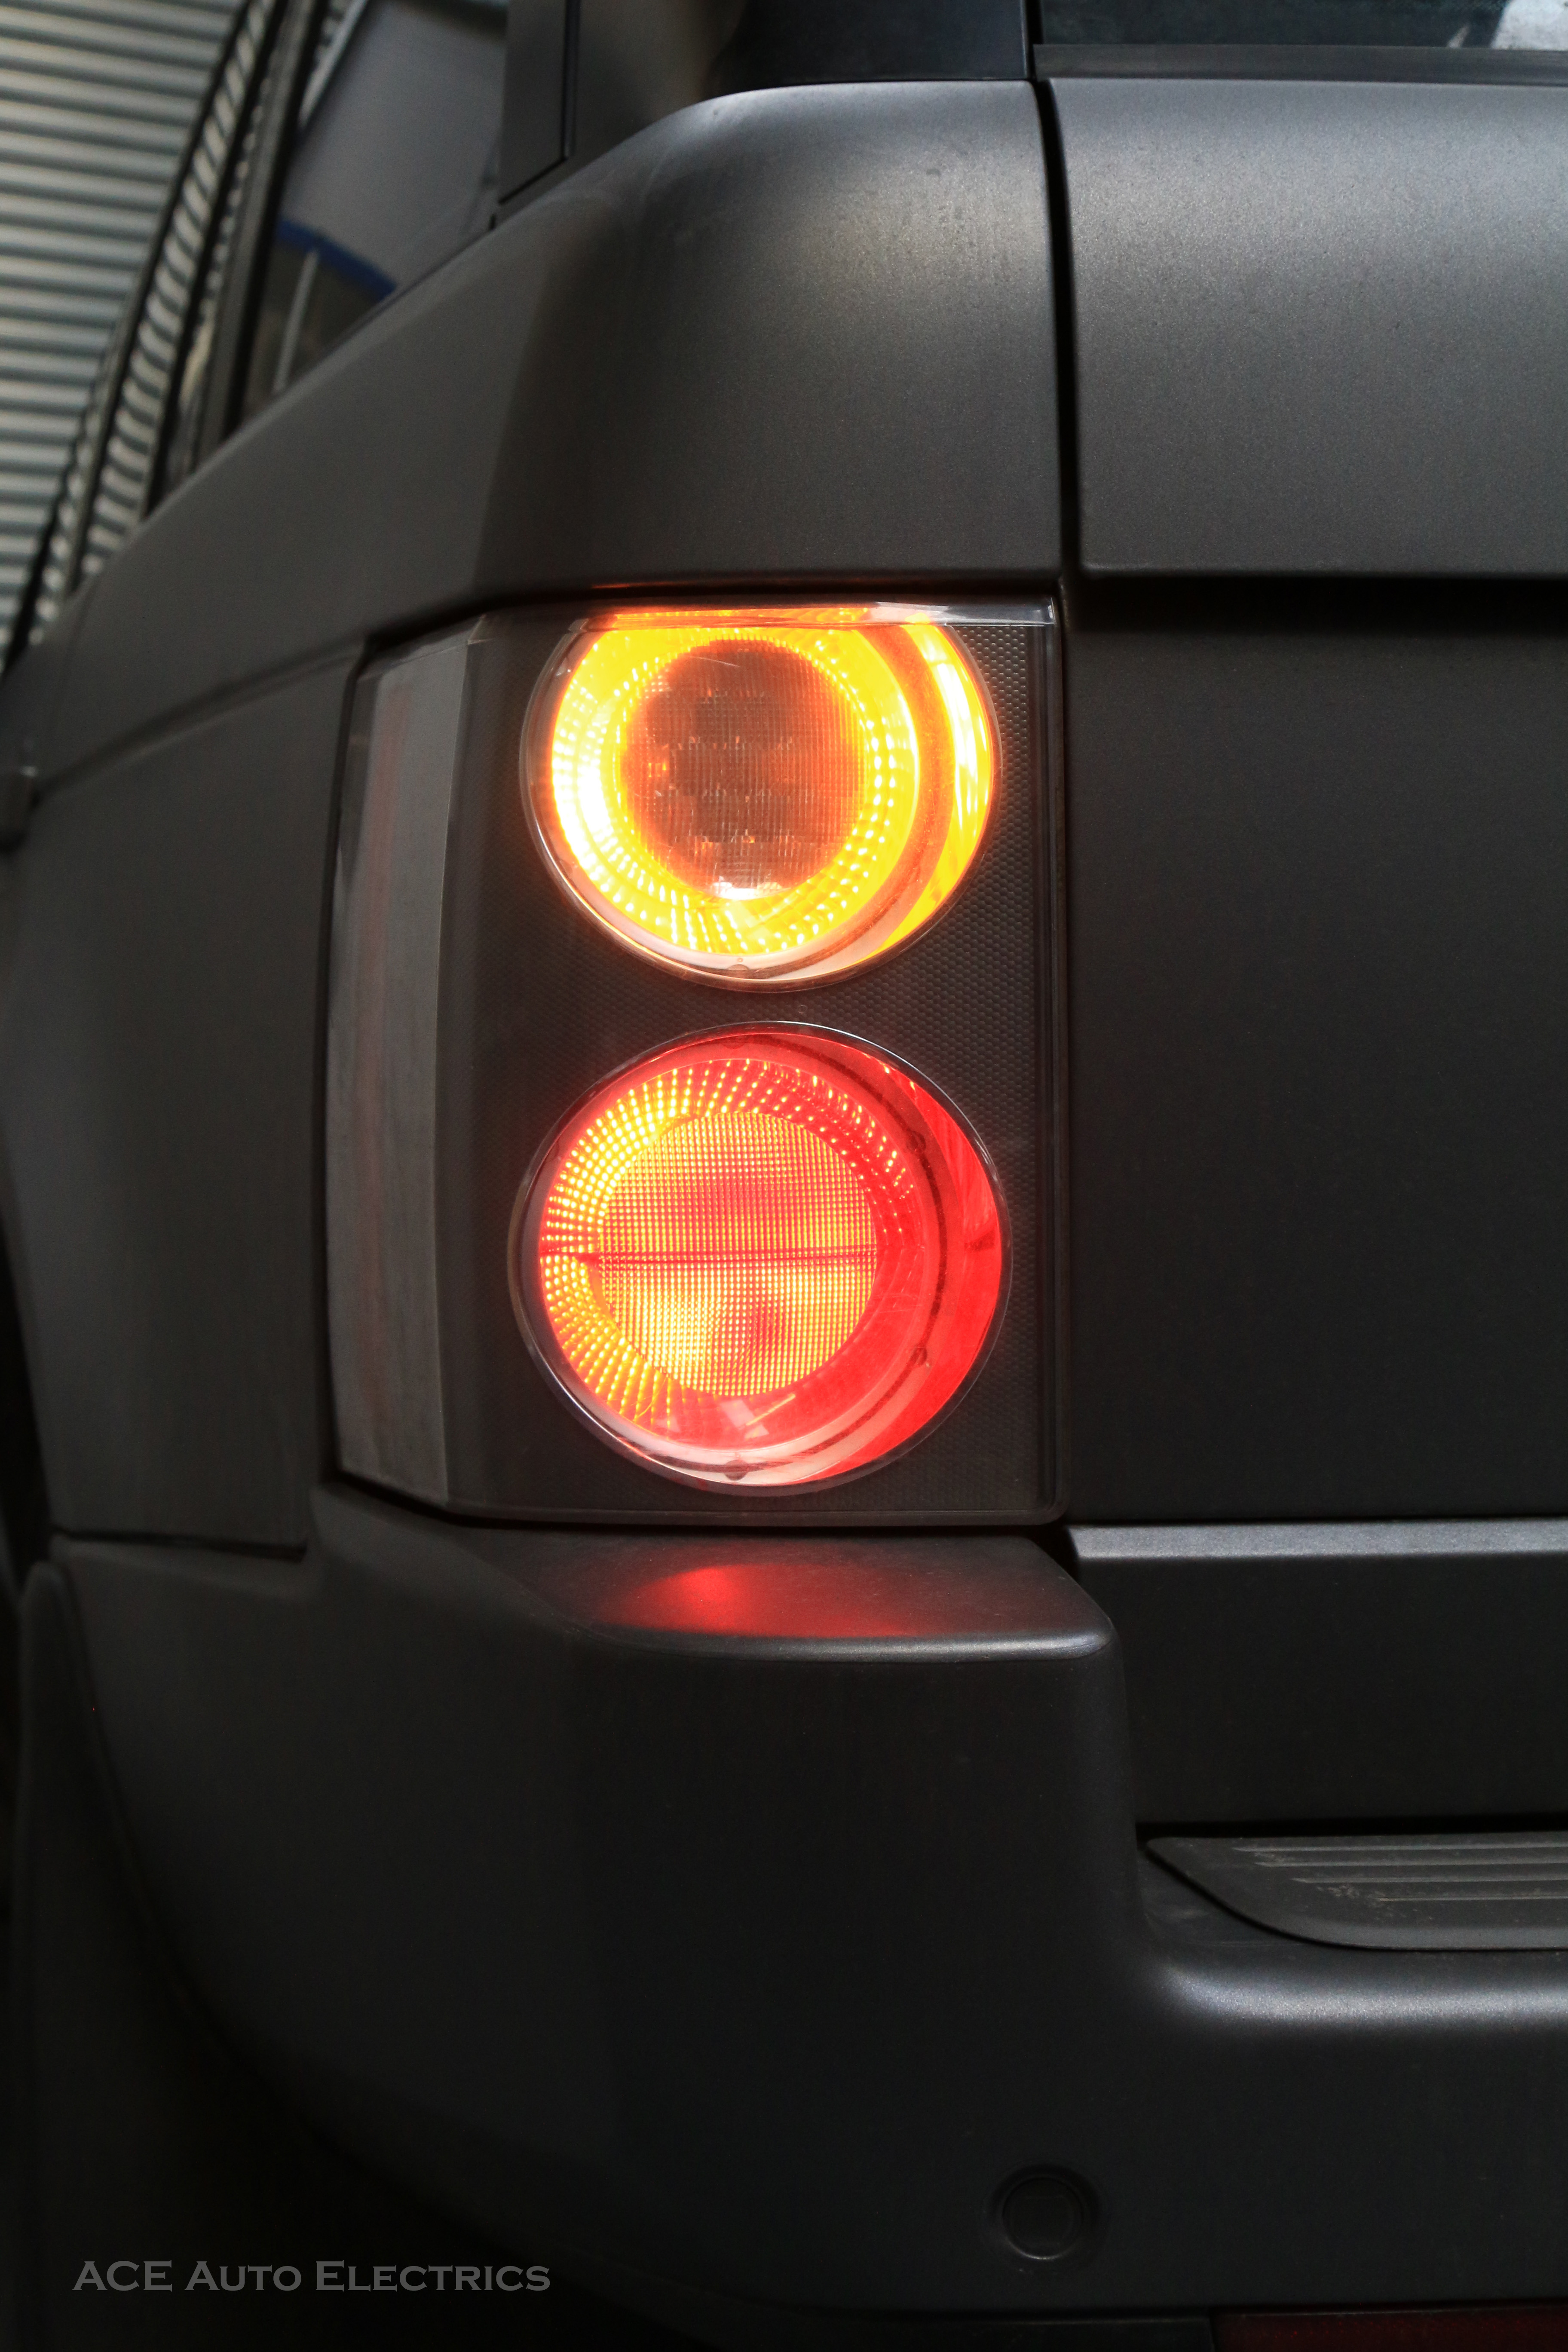 Range Rover Rear Light